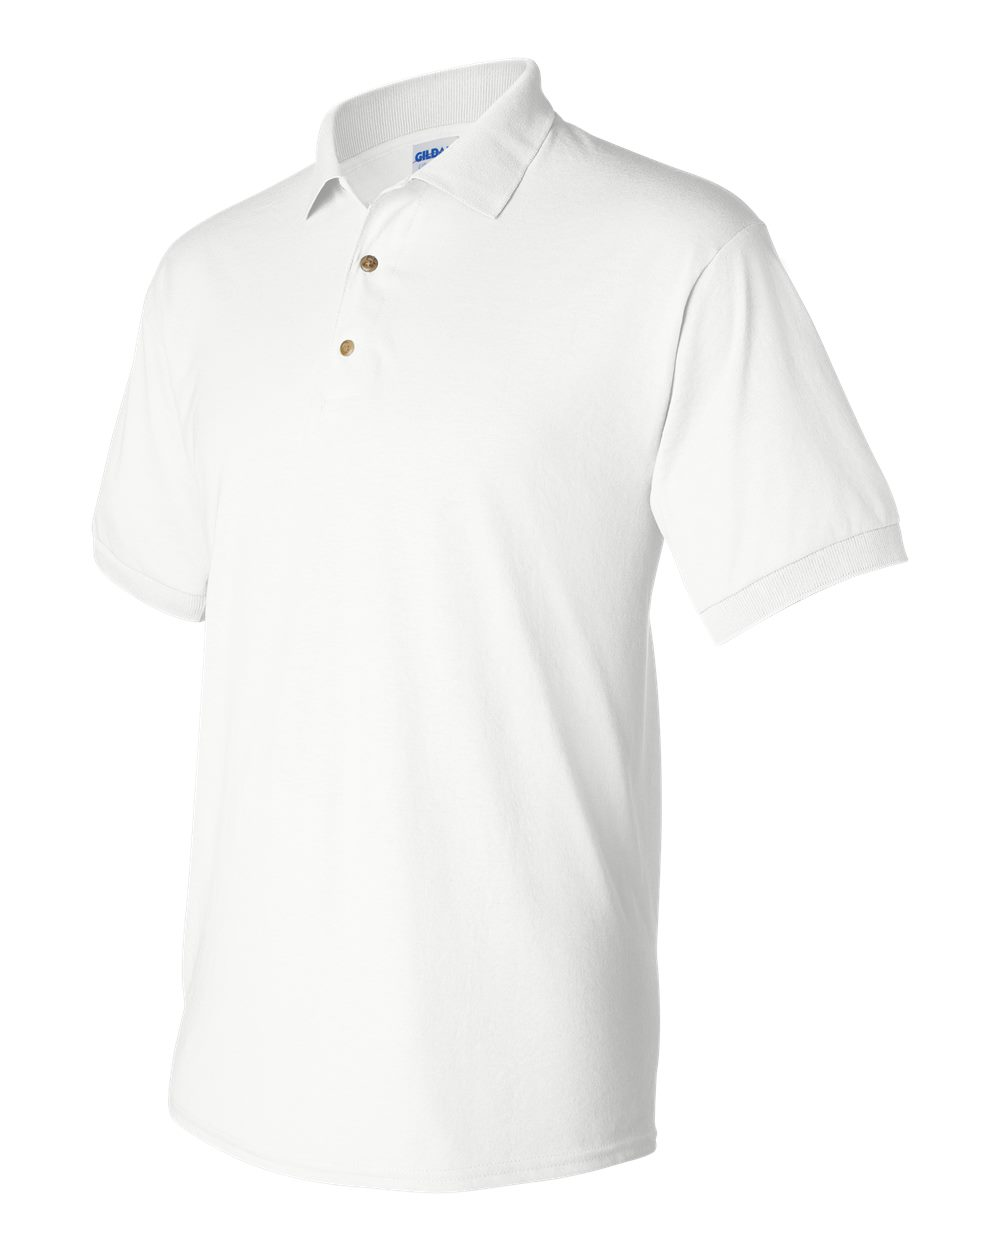 Clearance Southeast White Polo